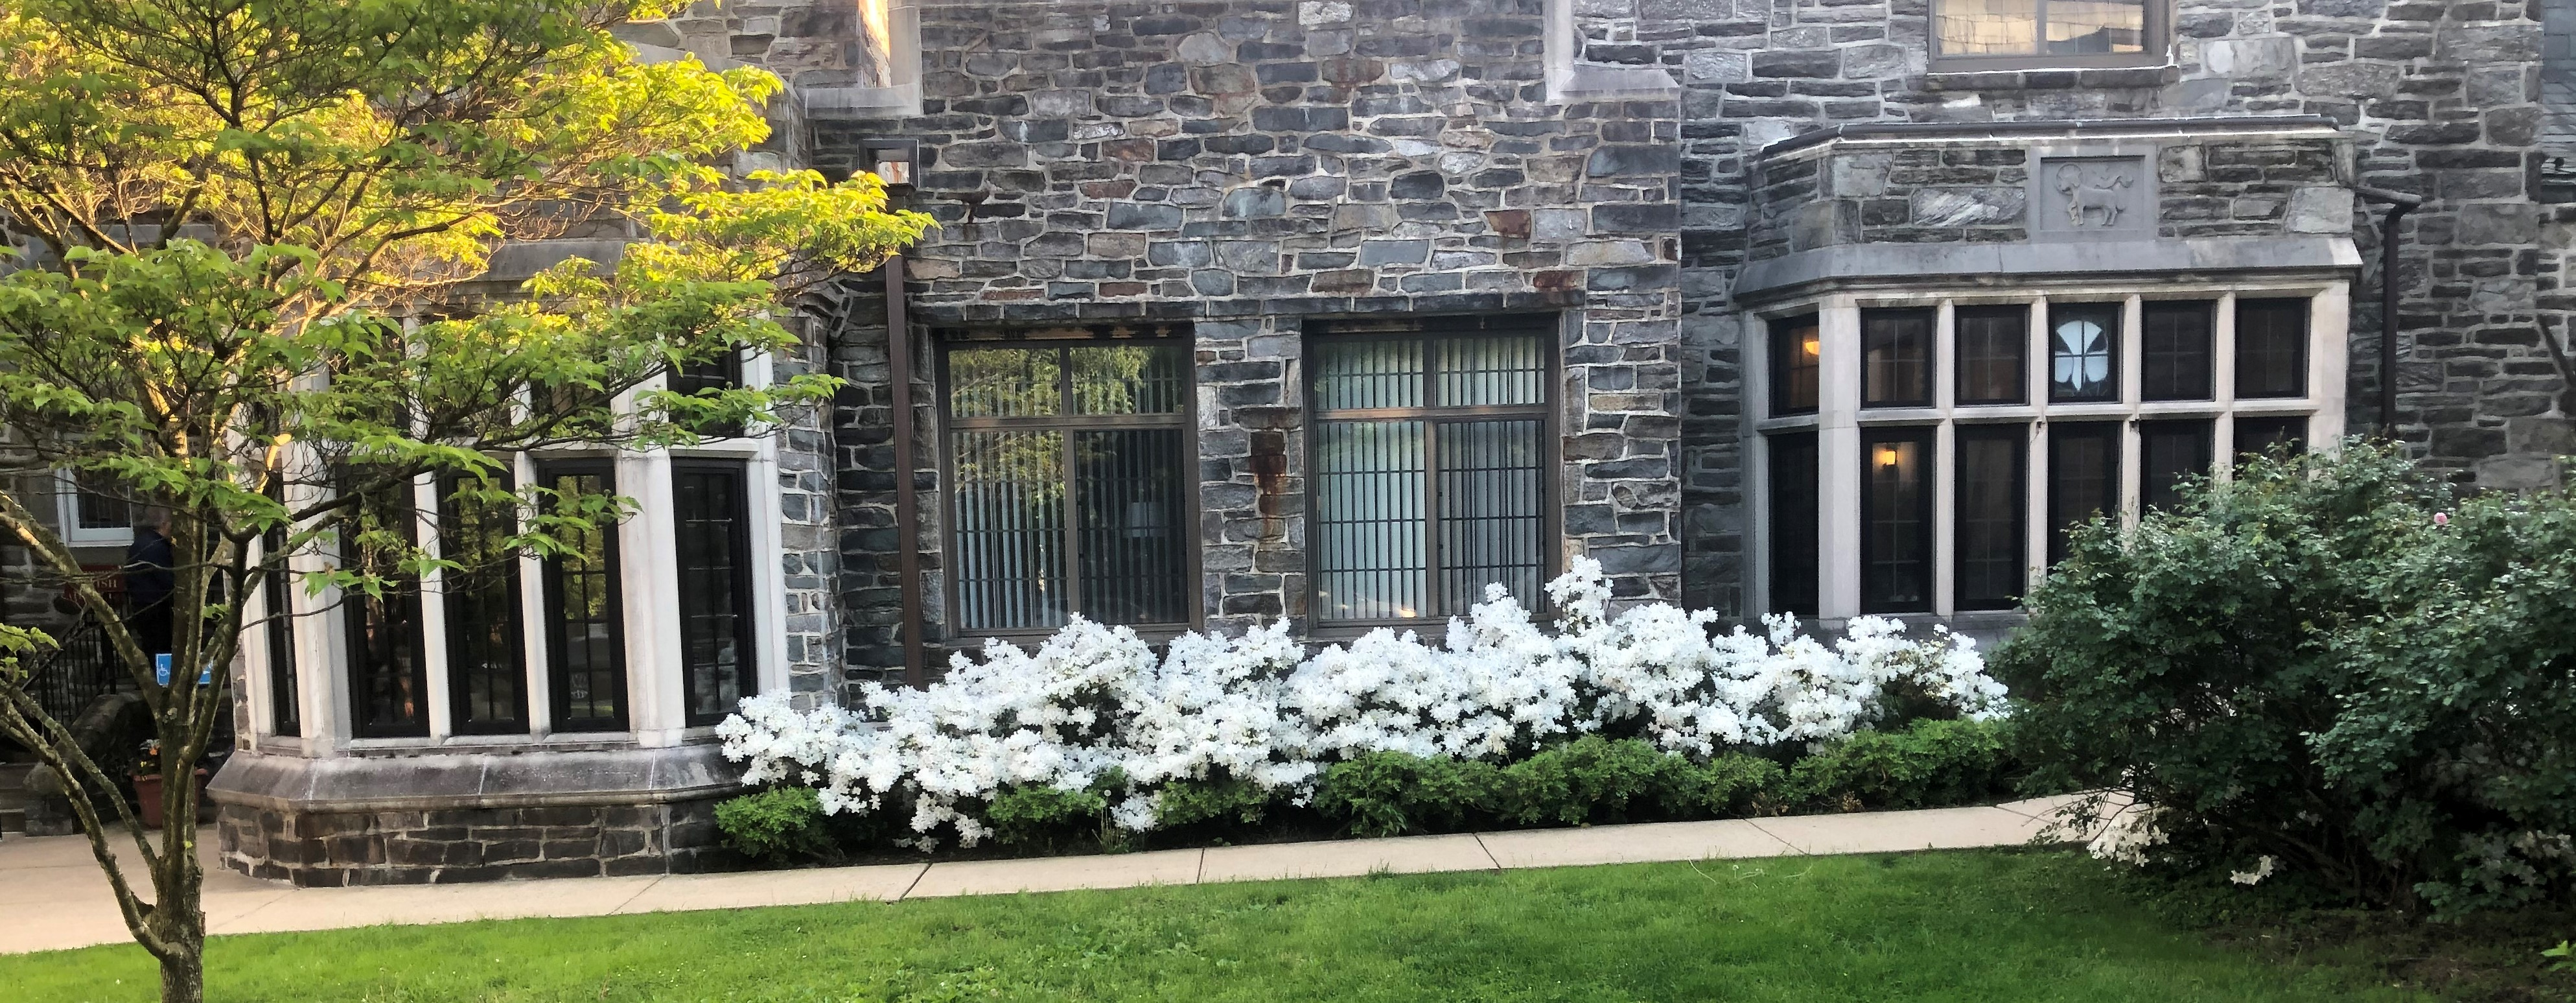 Attractive stone church building, white azalea flowers blooming in front